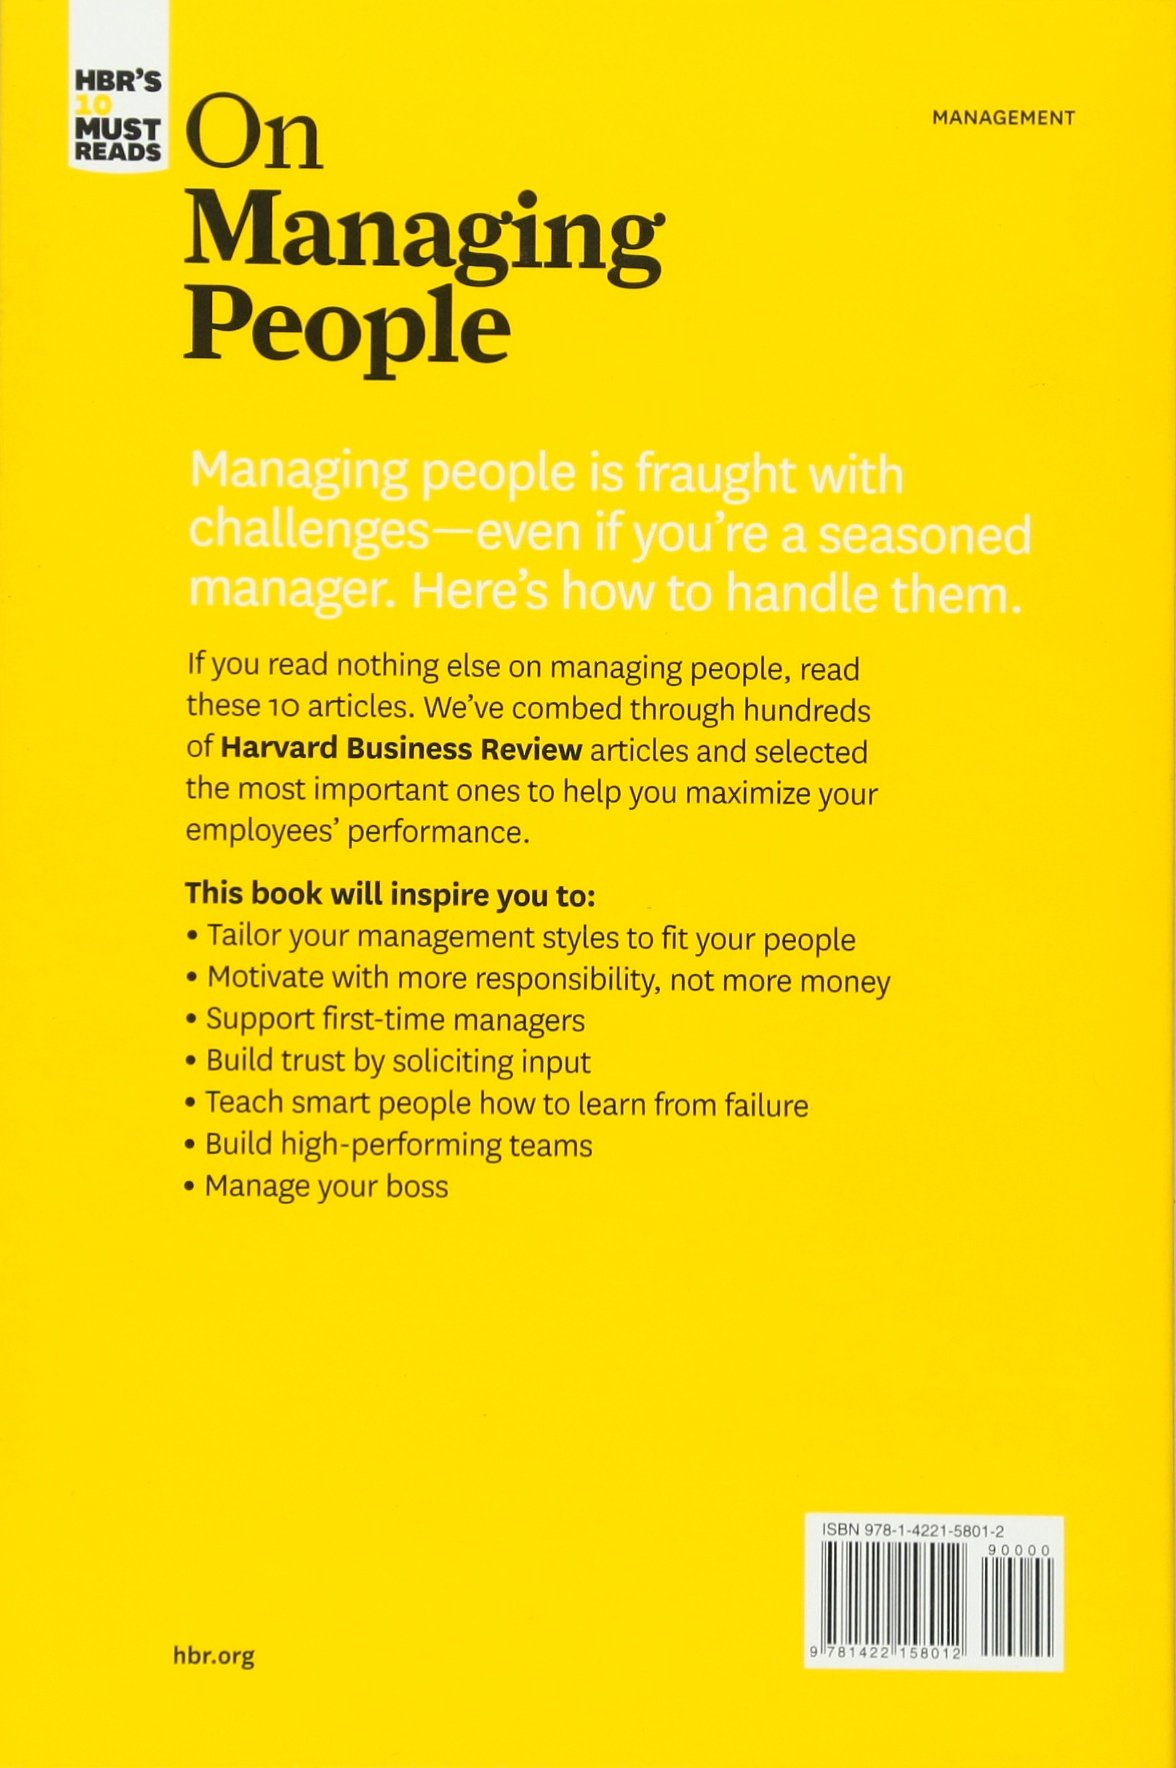 Hbrs 10 must reads on managing people livros na amazon brasil hbrs 10 must reads on managing people livros na amazon brasil 9781422158012 fandeluxe Gallery